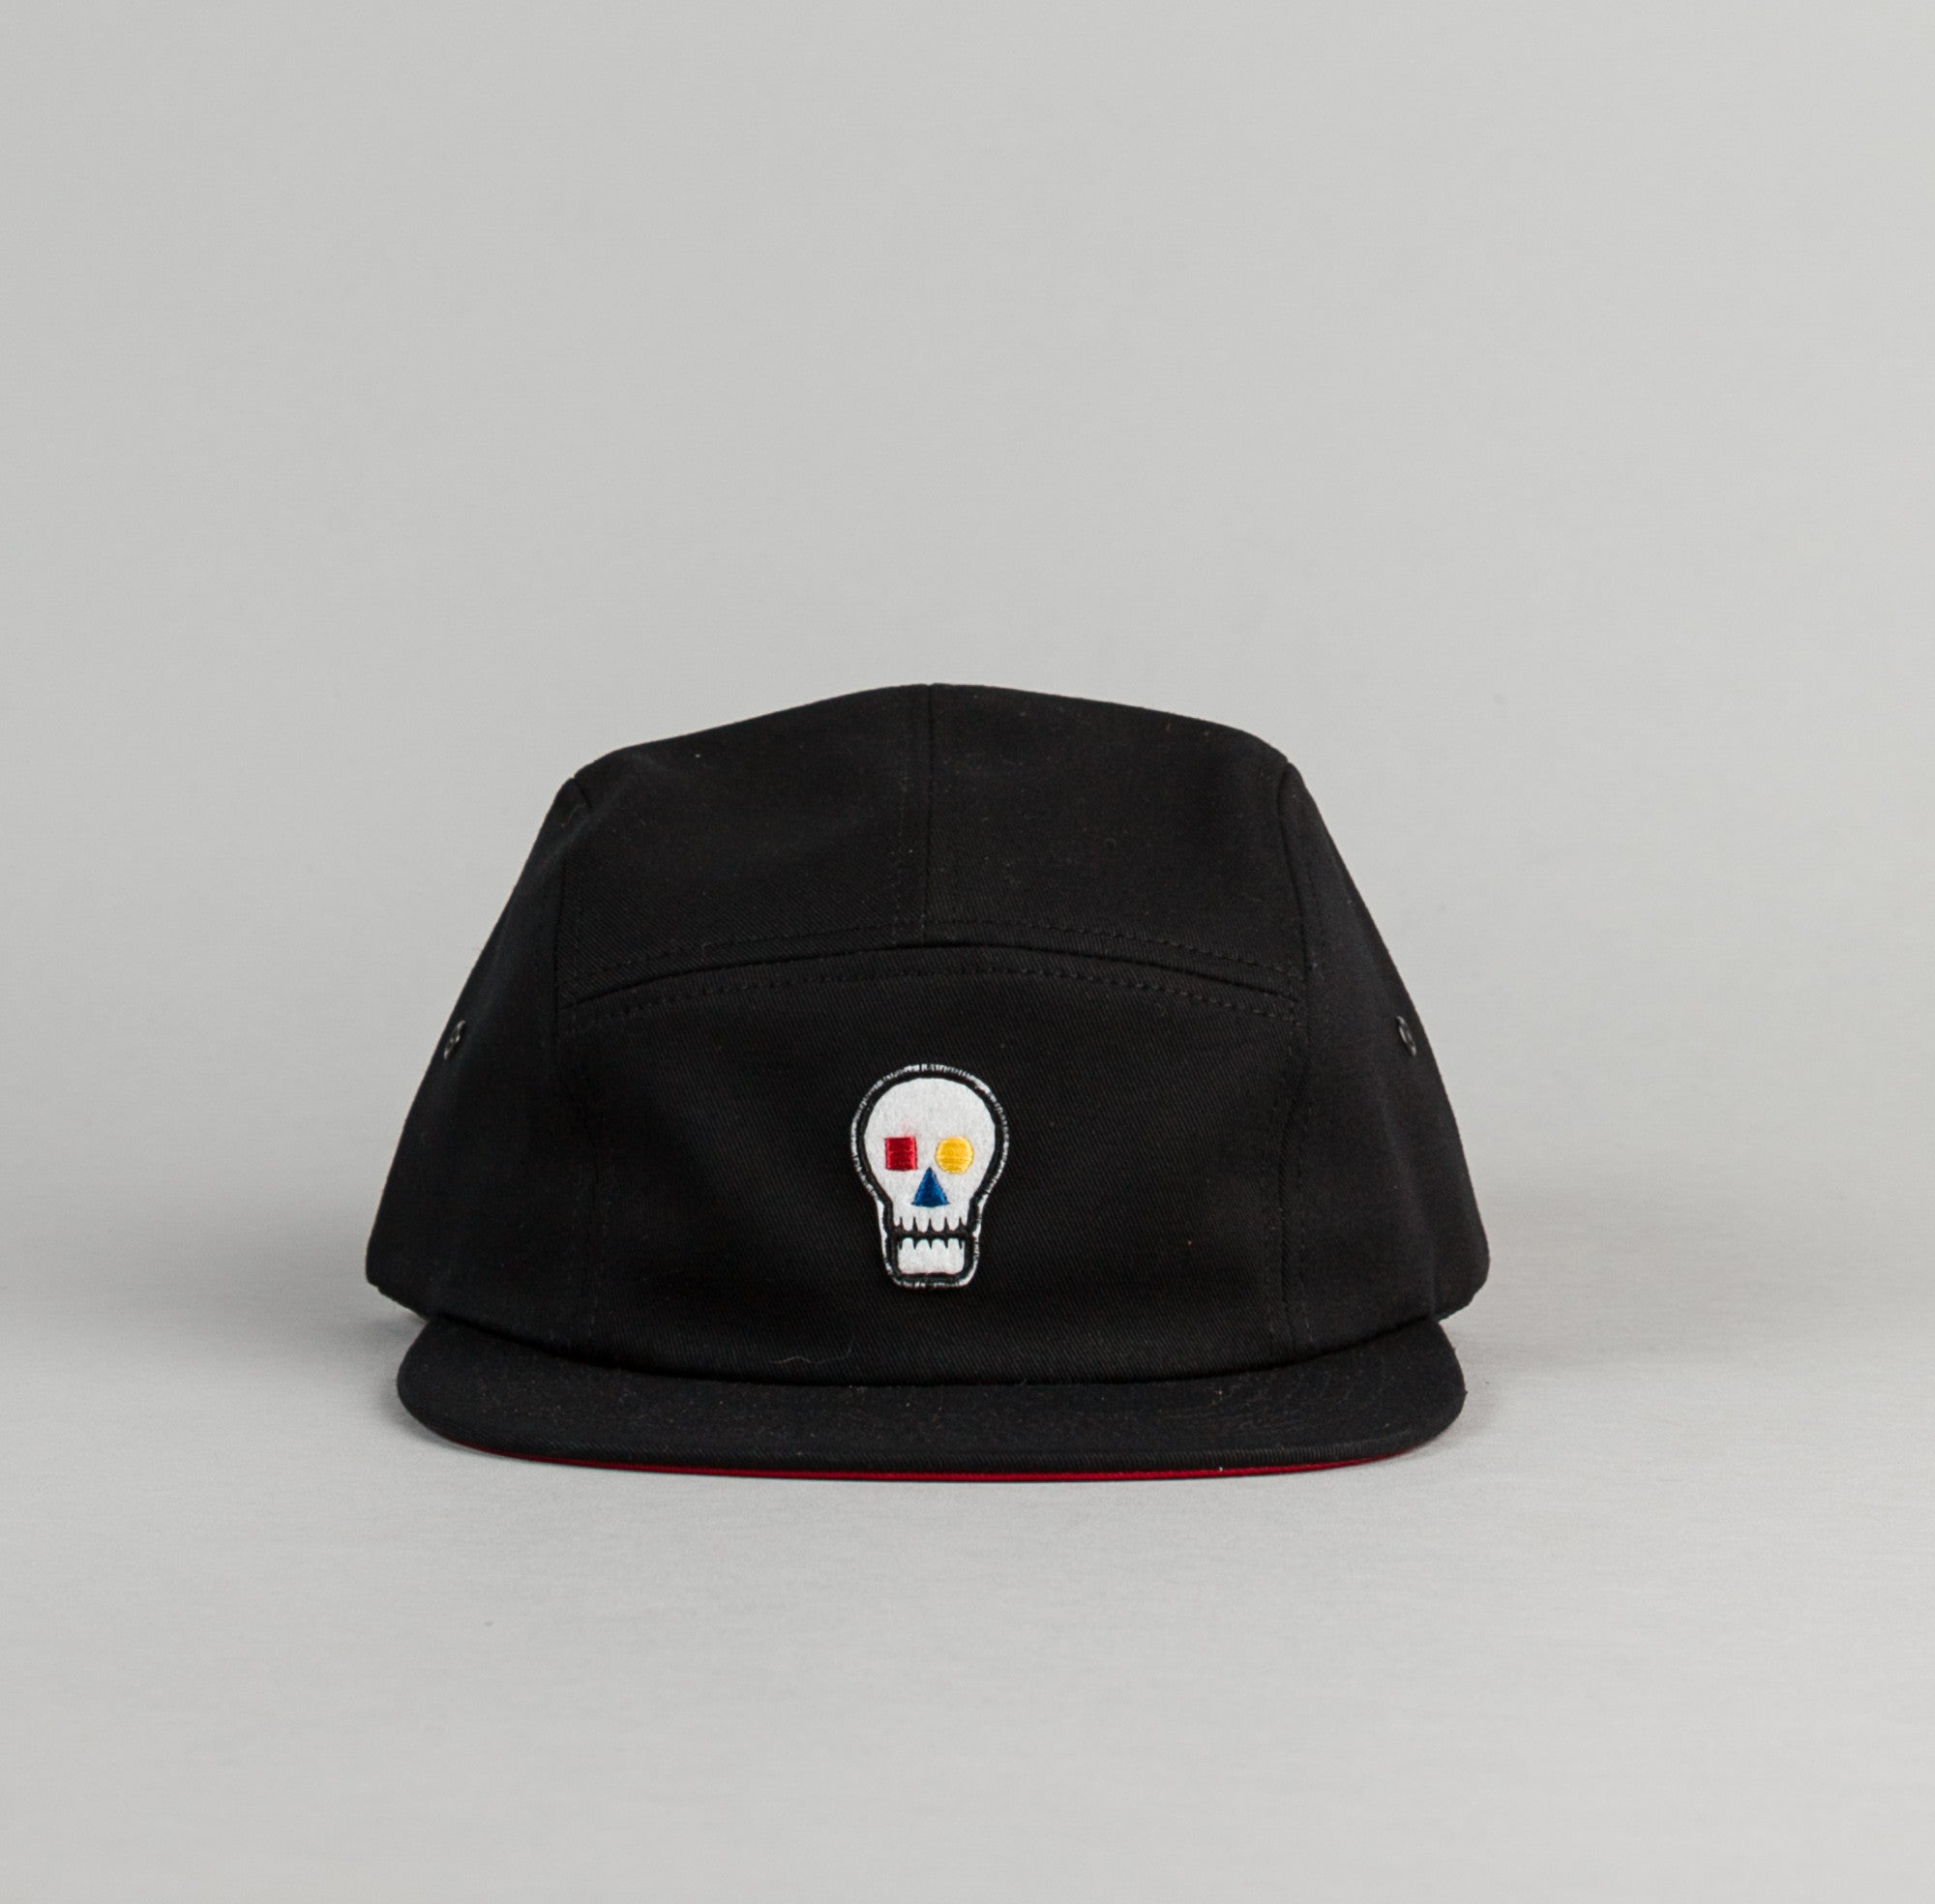 The Quiet Life Bauhaus Skull 5 Panel Cap - Black